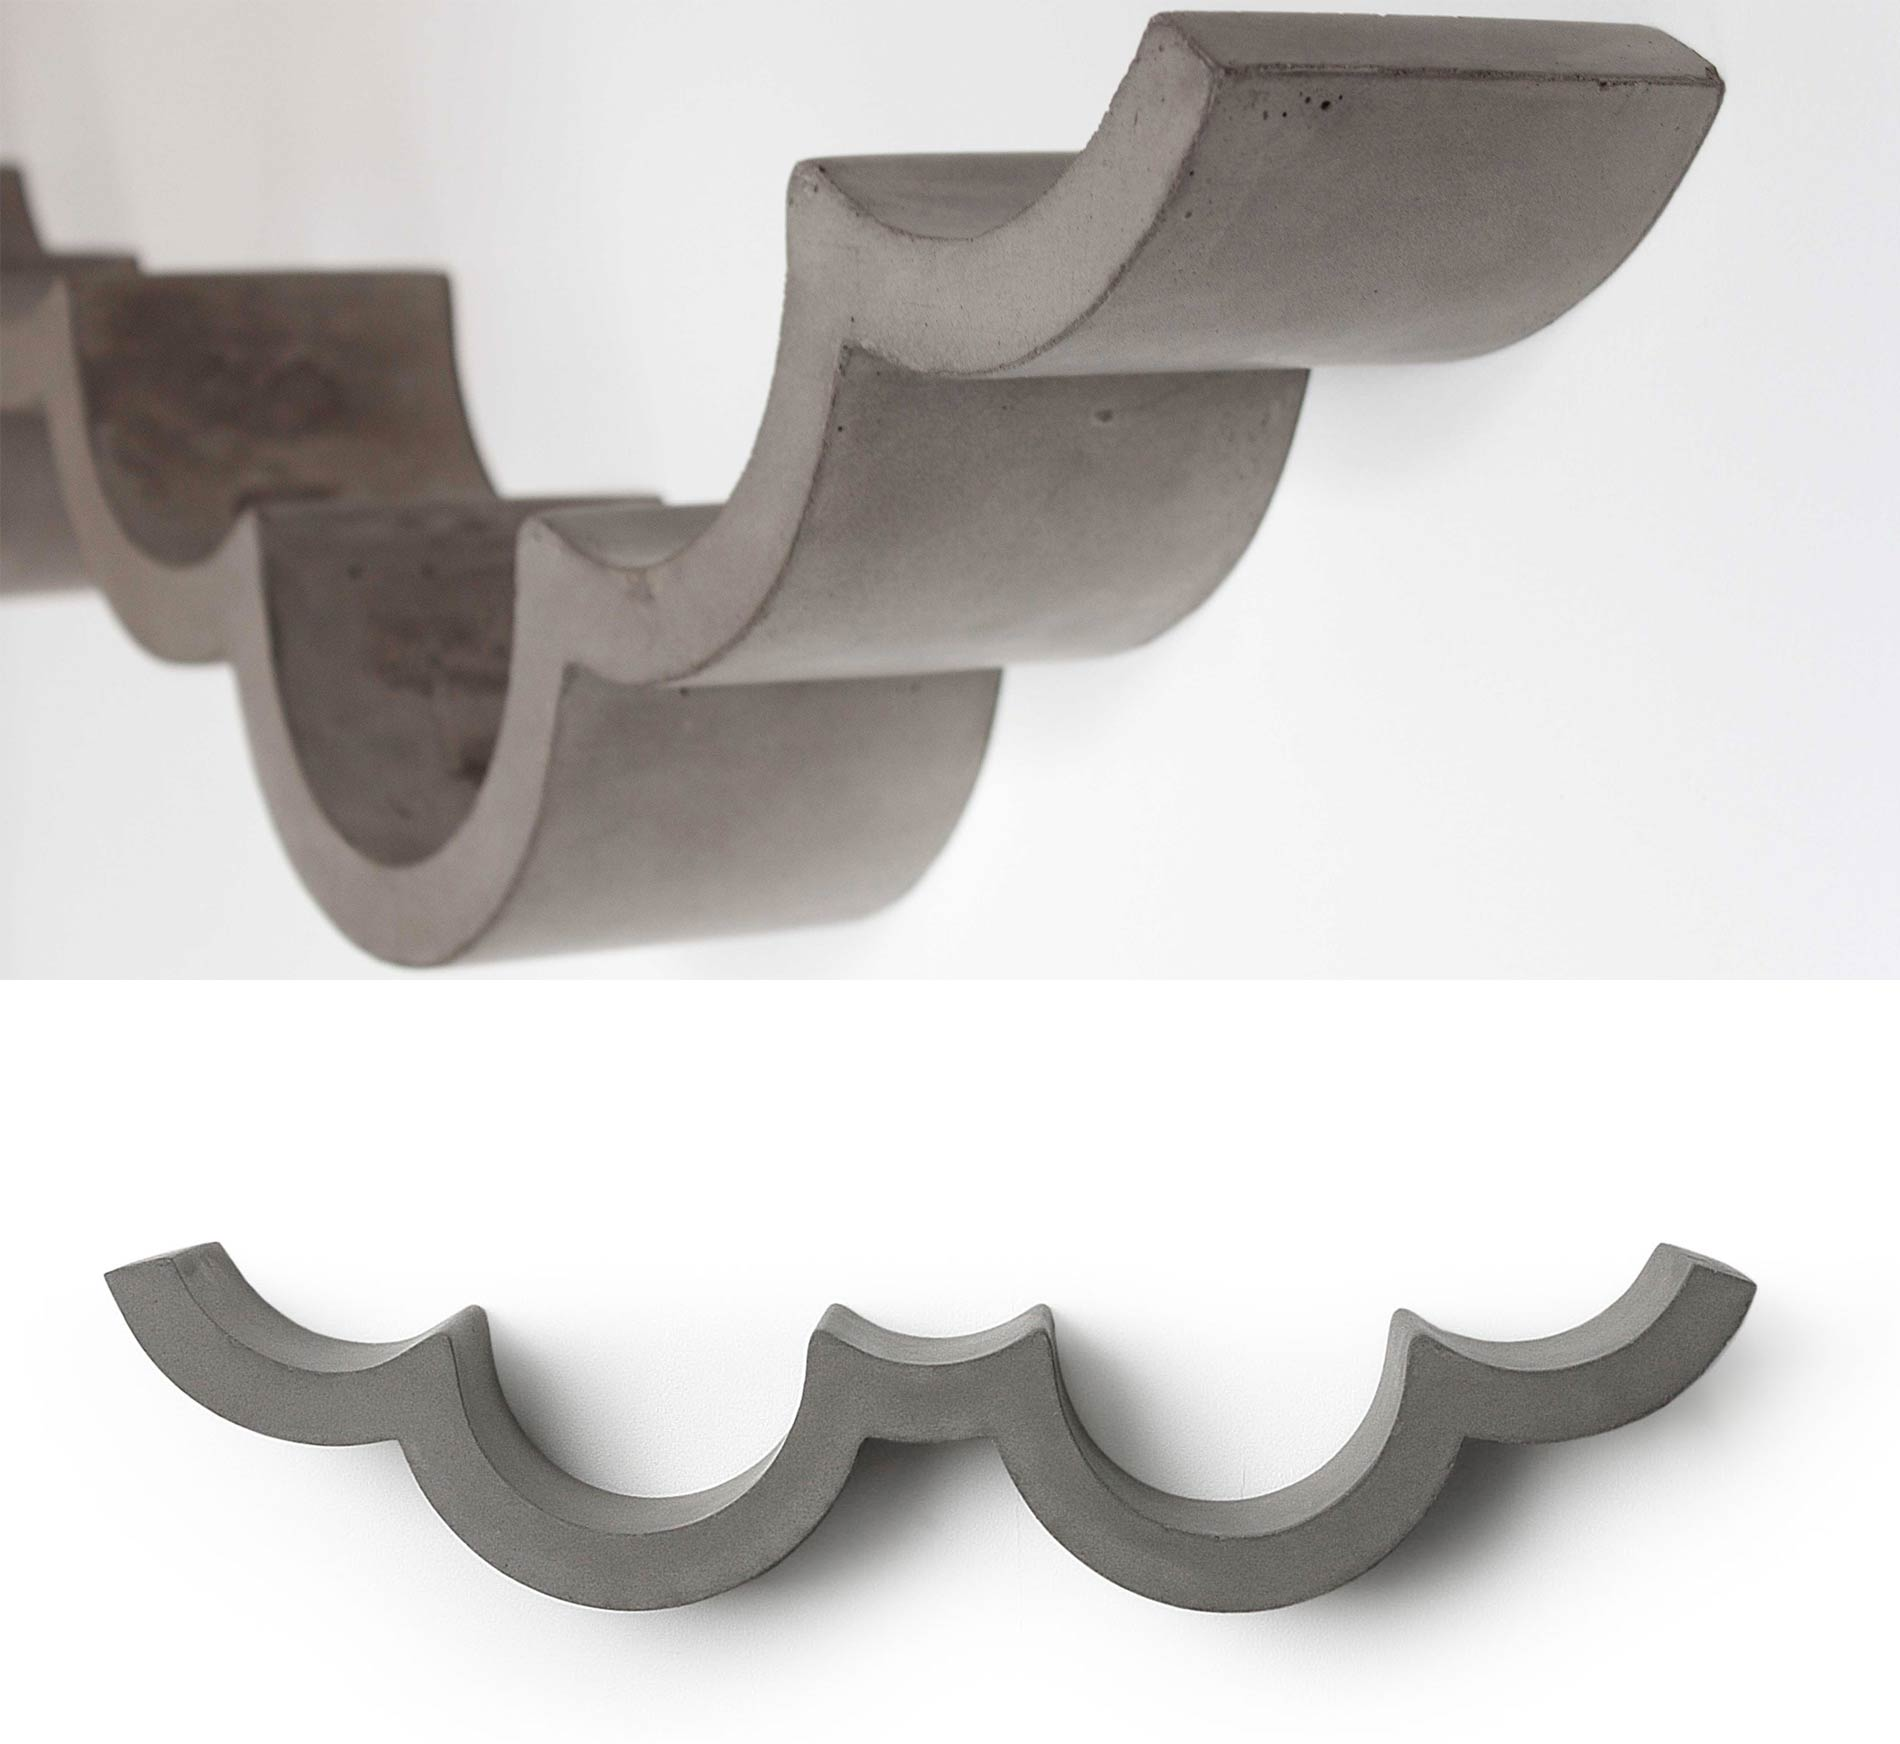 Images of a lumpy shelf that becomes a cloud when it holds toilet paper.